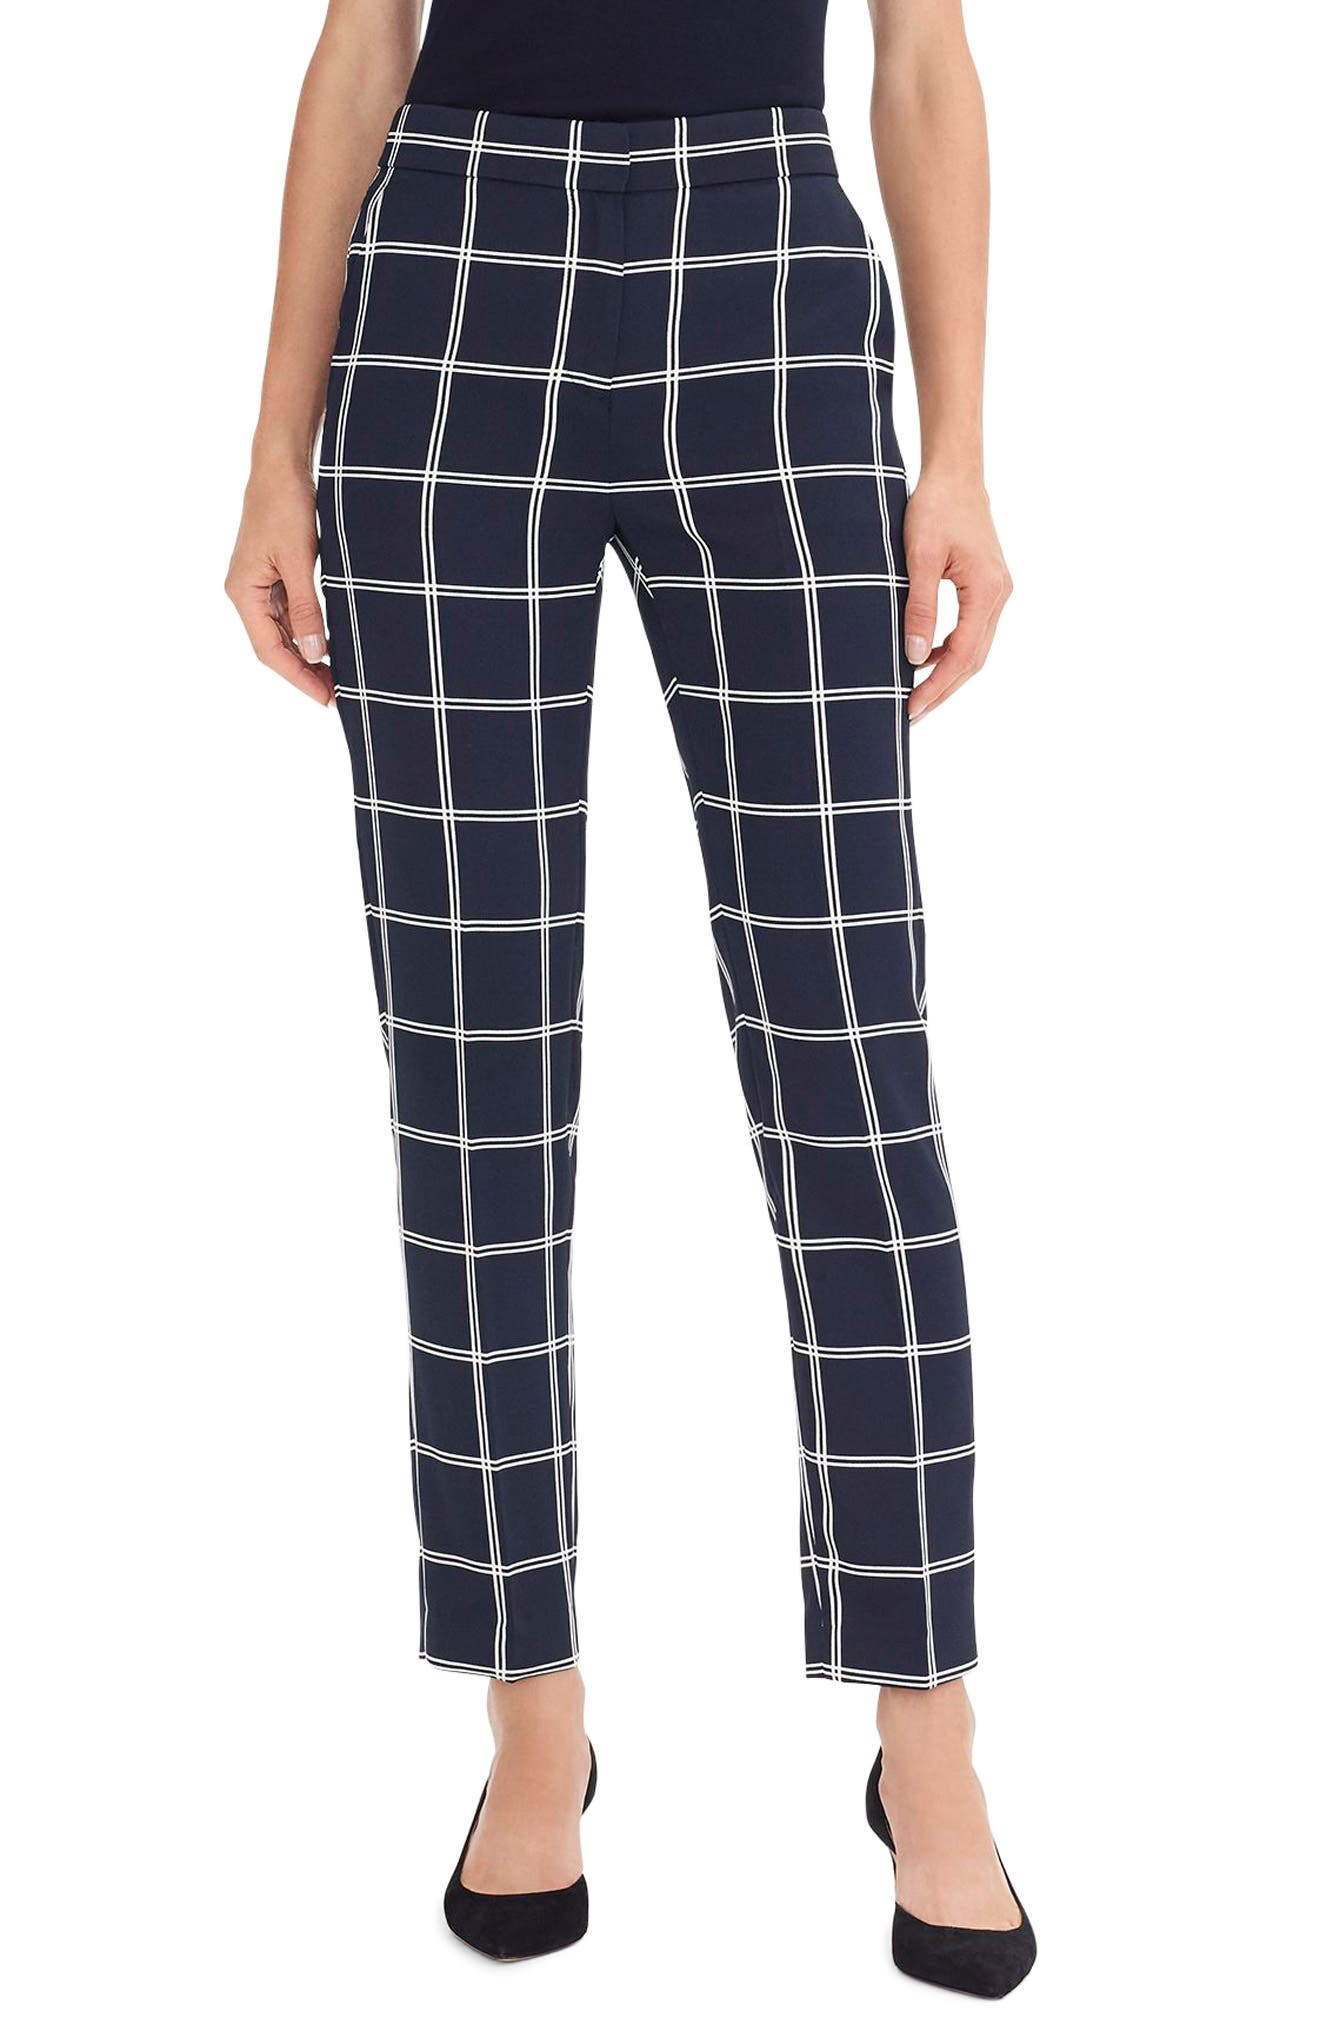 60s – 70s Pants, Jeans, Hippie, Bell Bottoms, Jumpsuits Womens J.crew French Girl Windowpane Slim Crop Pants Size 16 - Blue $49.49 AT vintagedancer.com